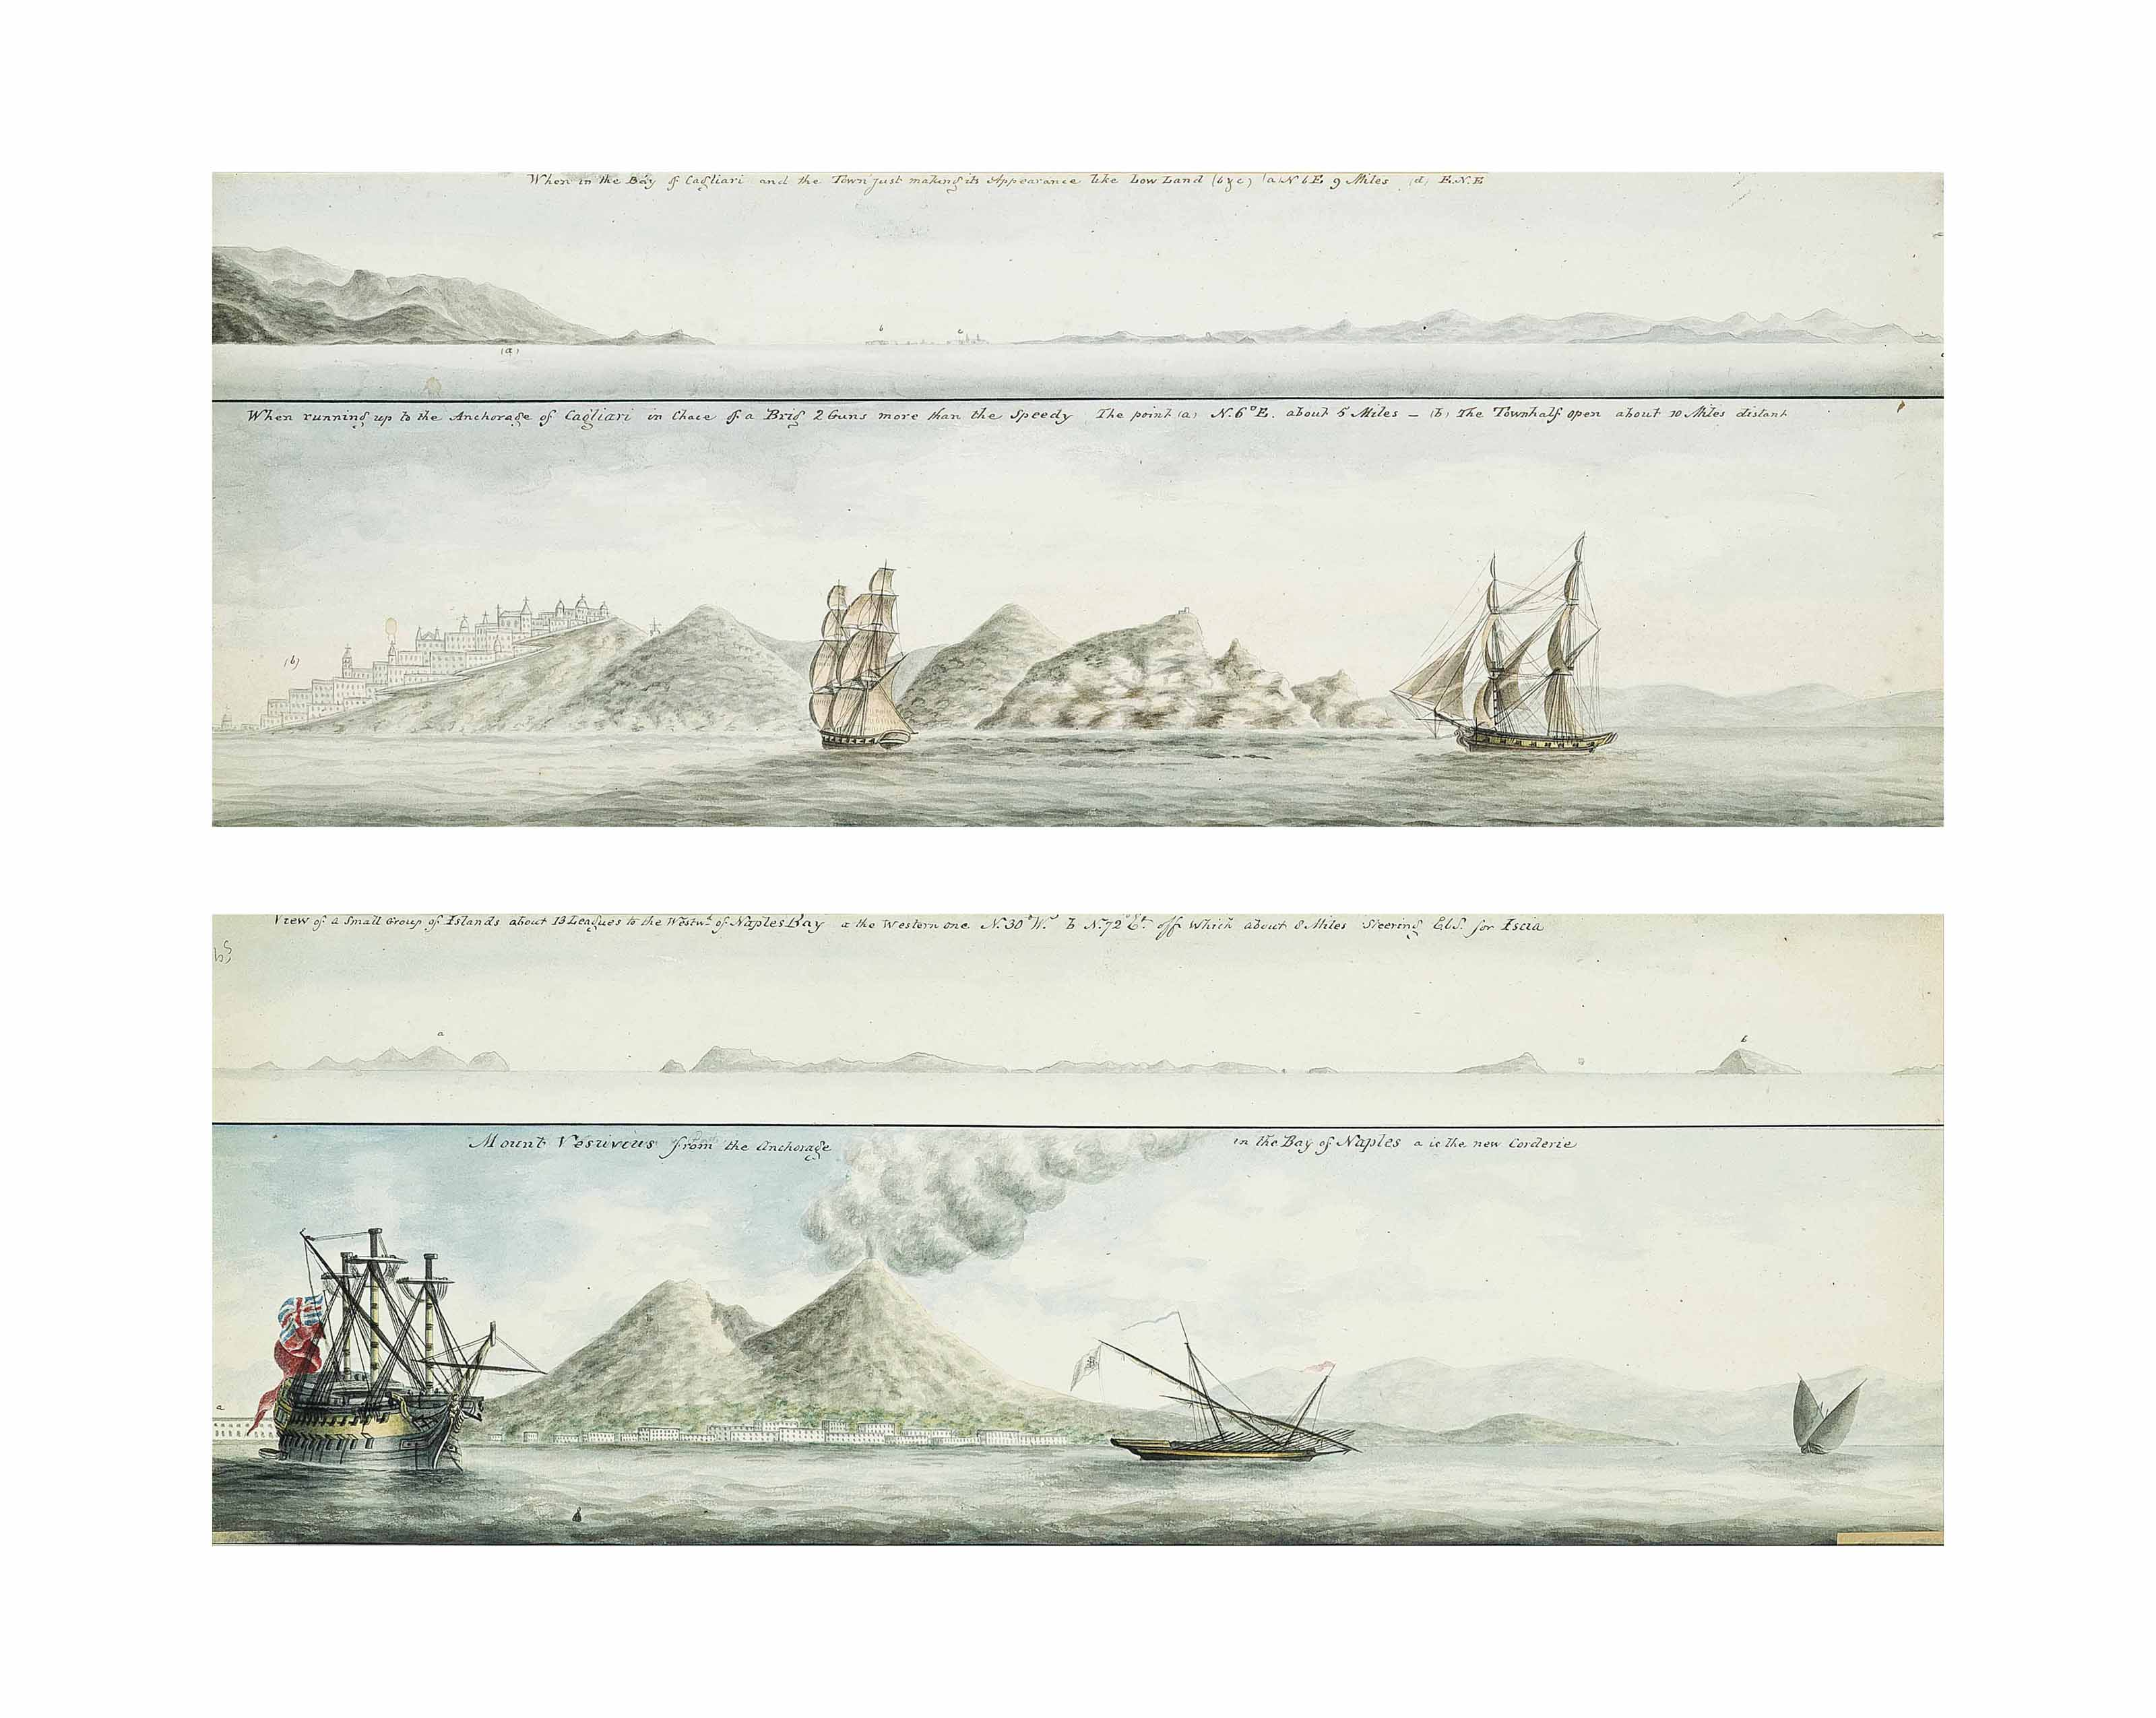 """The Bay of Cagliari, Sardinia;  and The """"gallant little Speedy"""" in pursuit of an enemy (French [?]) brig running for the shelter of Cagliari, on the Sardinian coast, in the spring of 1800 (recto); and View of a small group of islands to the west of Naples Bay; and Mount Vesuvius from the anchorage in the Bay of Naples (verso) (all illustrated)"""